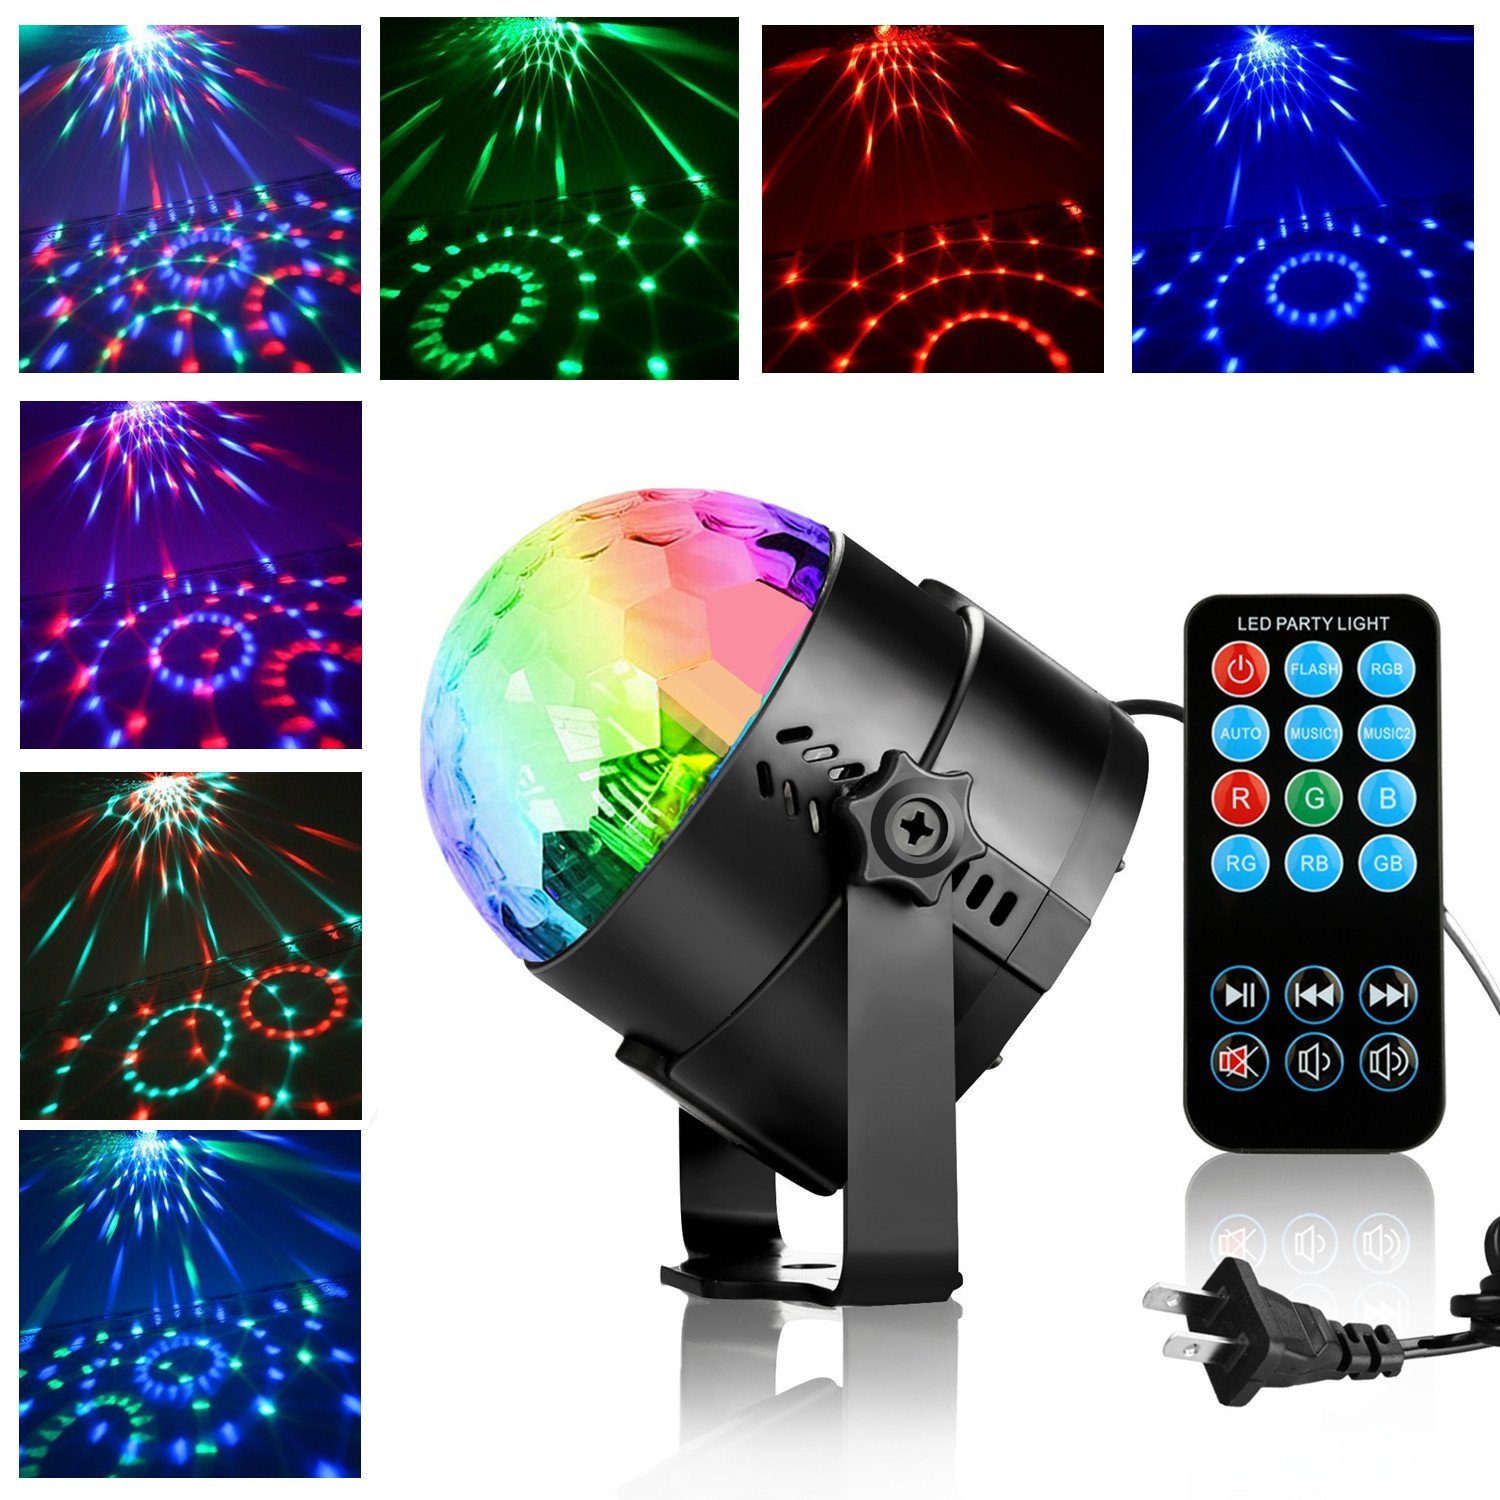 Disco Ball,Sound Activated Disco Lights,Led Party Lights with Remote Control Dj Lighting,SMAtech RBG Strobe Light,karaoke Light machine,Stage Par Lighting for Home Room Dance Parties Birthday DJ Bar